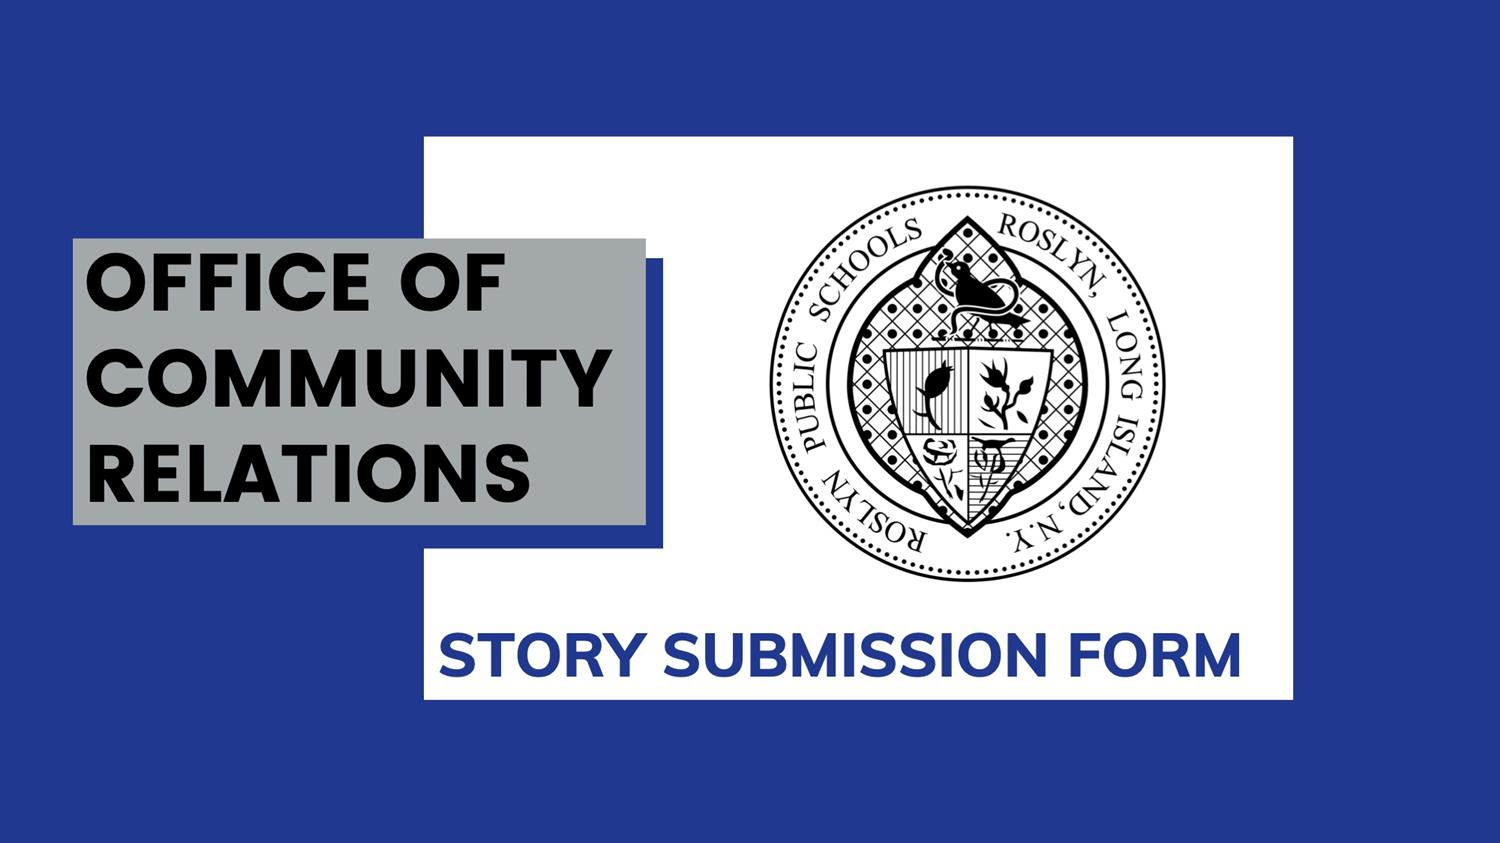 Office of Community Relations STORY SUBMISSION FORM